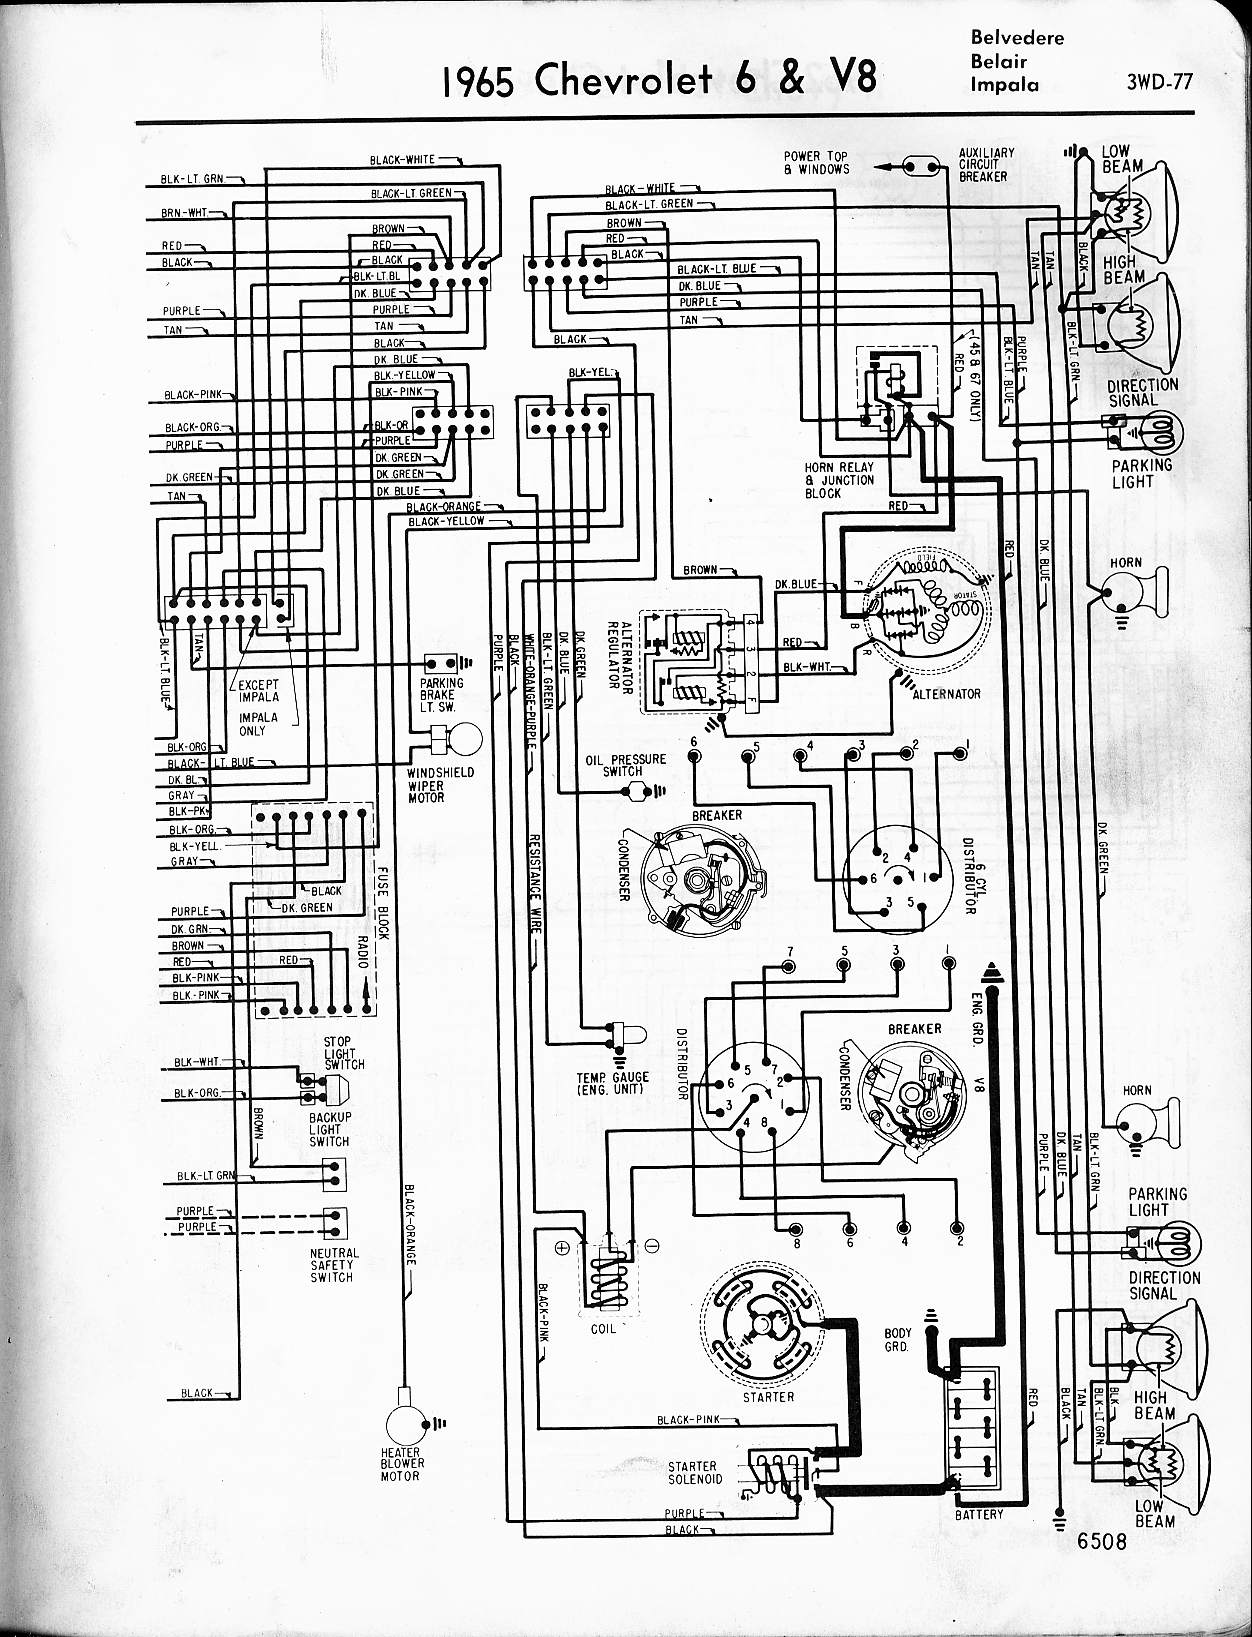 MWireChev65_3WD 077 1966 impala turn signal wiring diagram gto wire diagram \u2022 wiring 2011 impala wiring schematic at webbmarketing.co